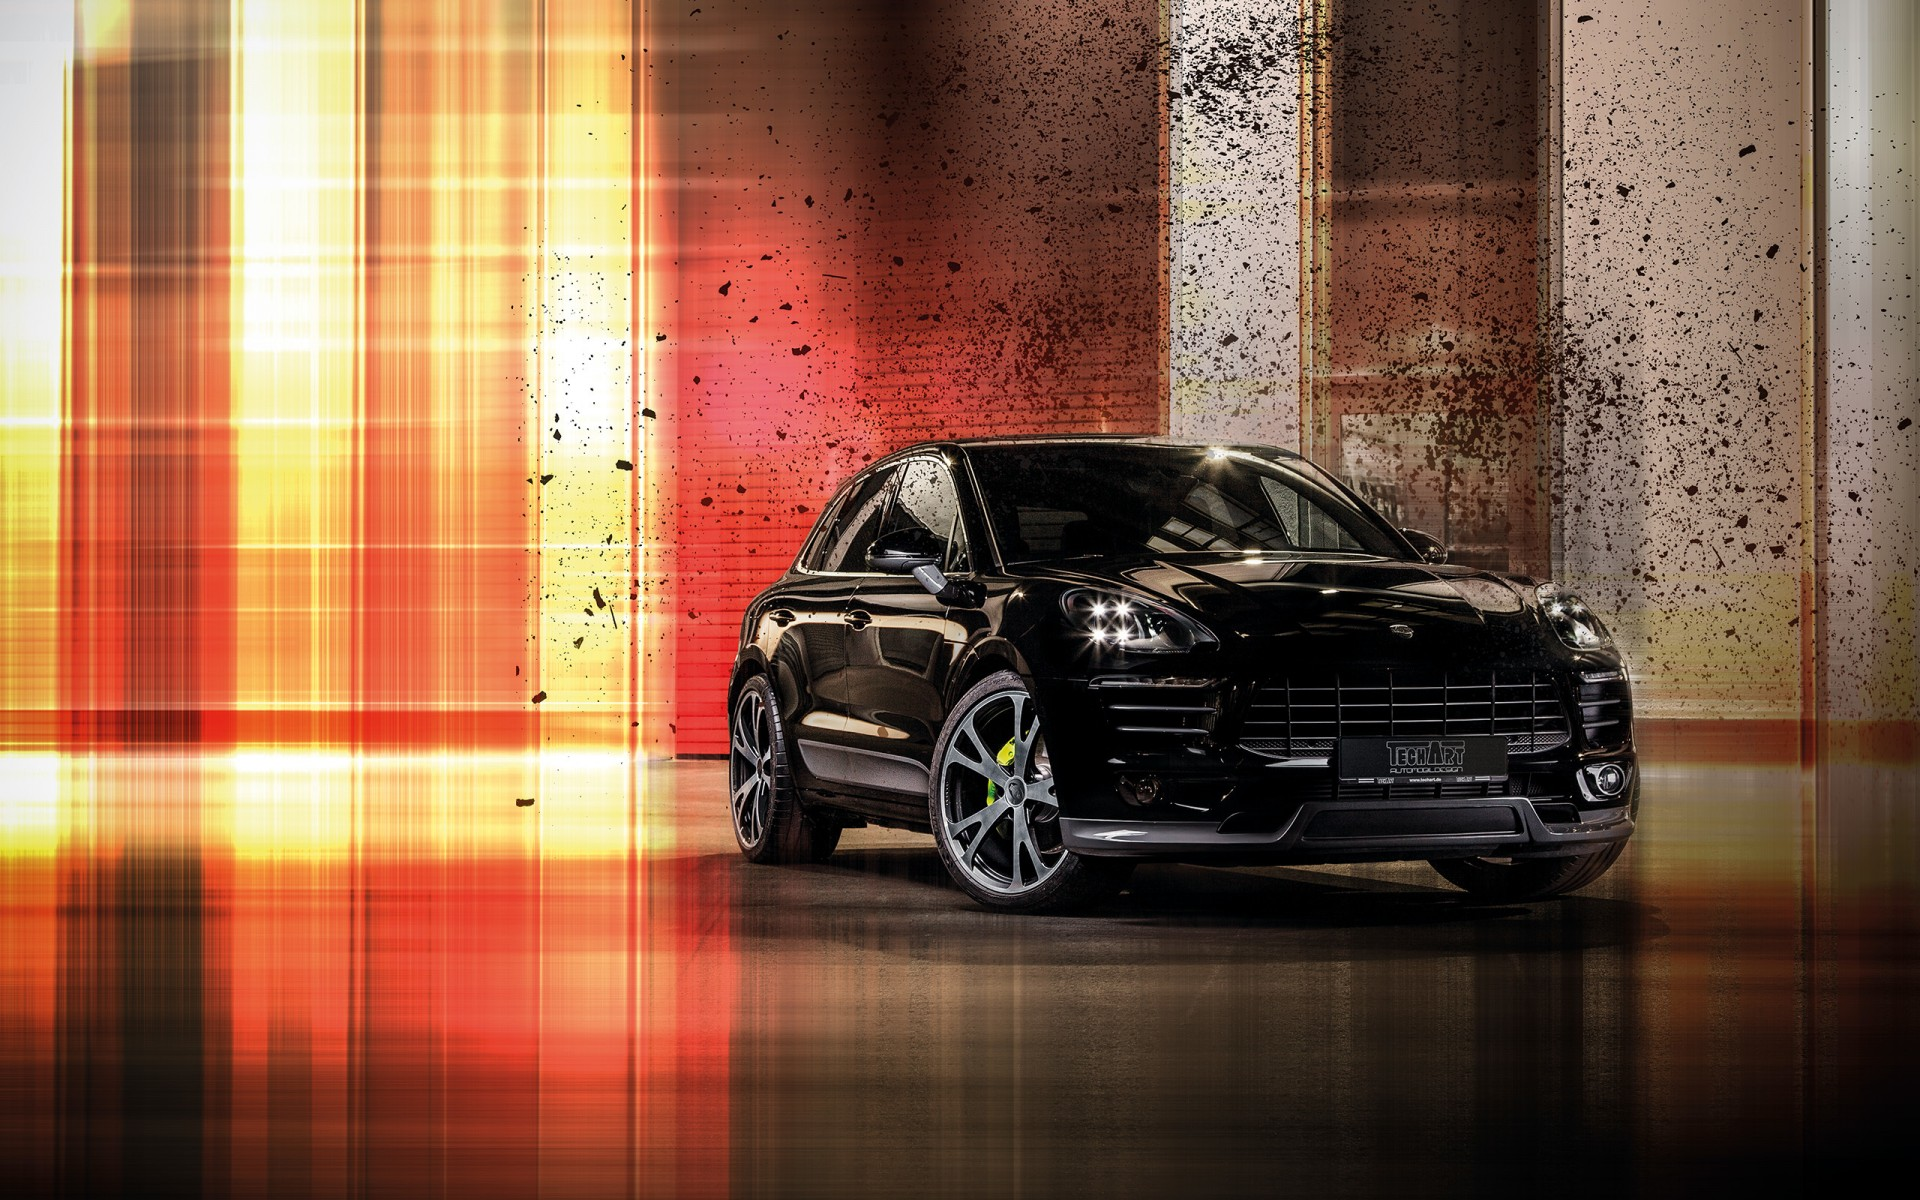 Inspirational Wallpapers Hd Free Download 2015 Porsche Macan Wallpapers Hd Wallpapers Id 15681